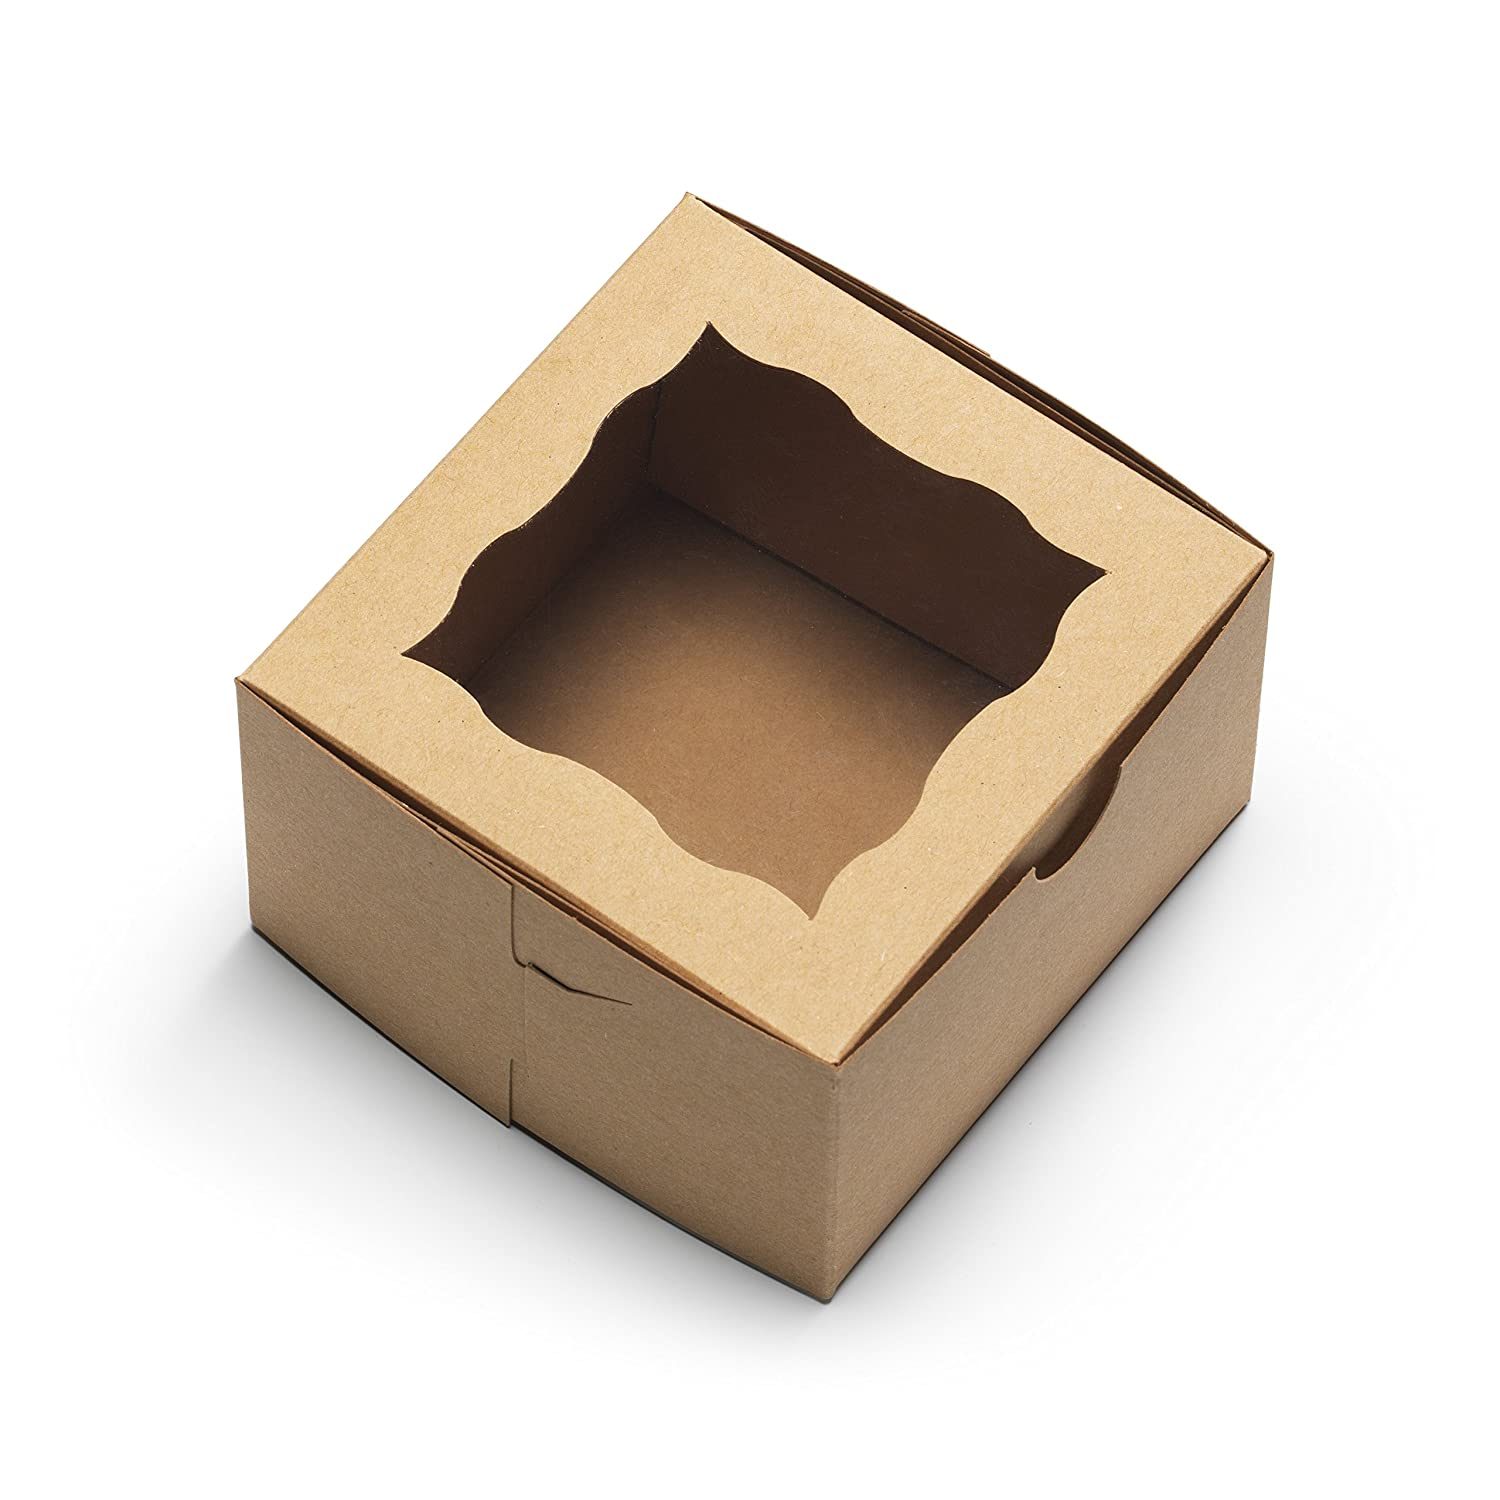 "[50Pack] Bakery Boxes with Window 4x4x2.5"" - by Cuisiner (Brown)"